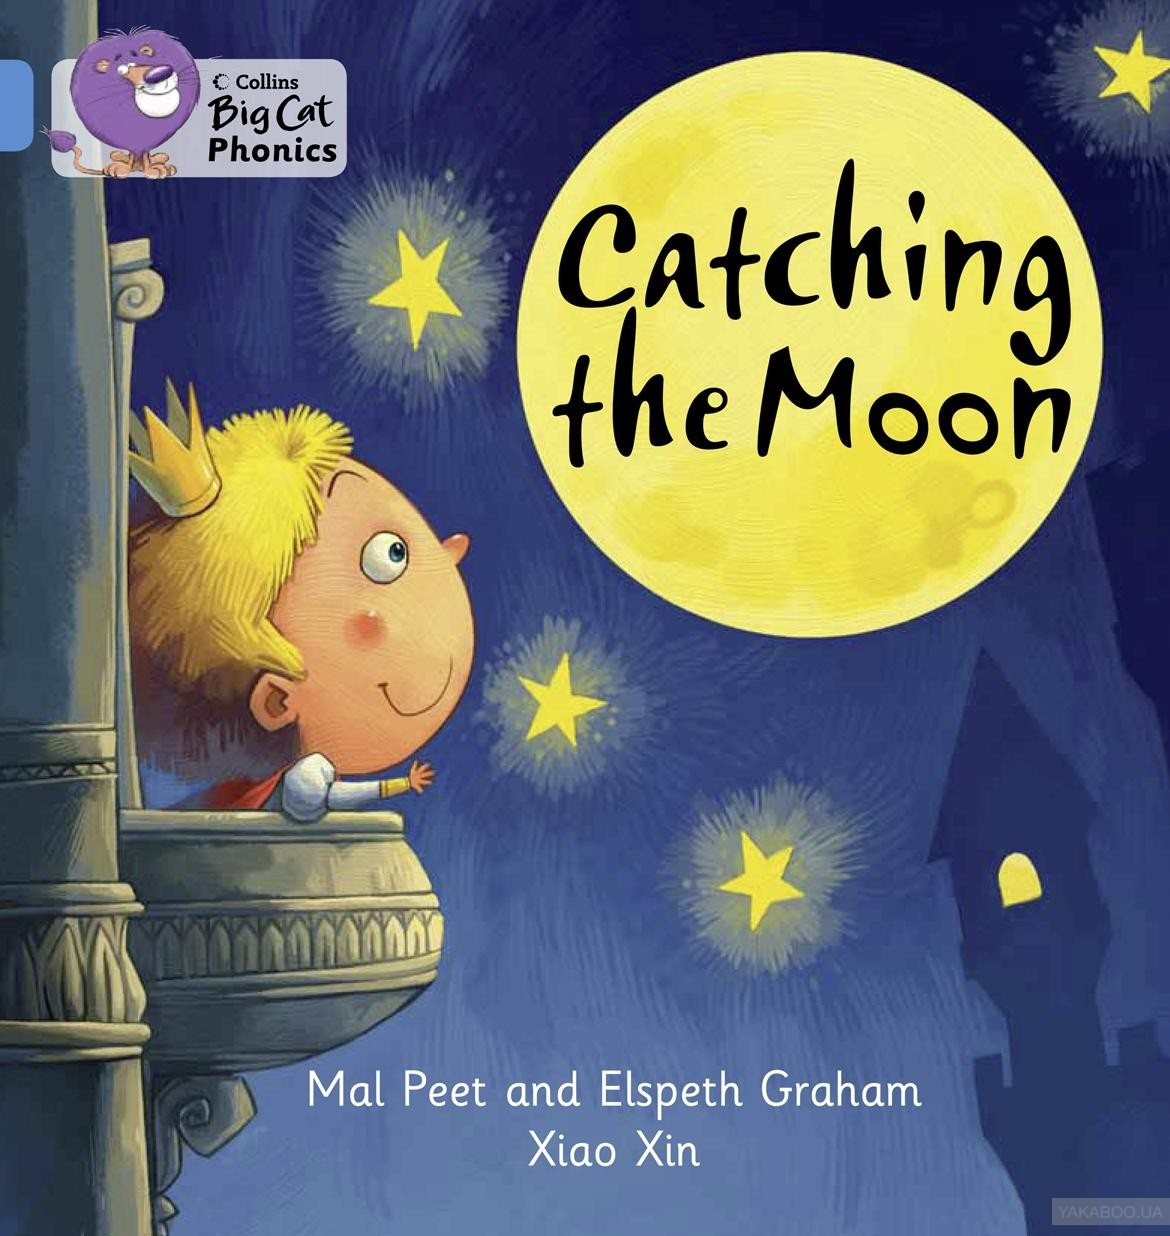 Big Cat Phonics 4 Catching the Moon